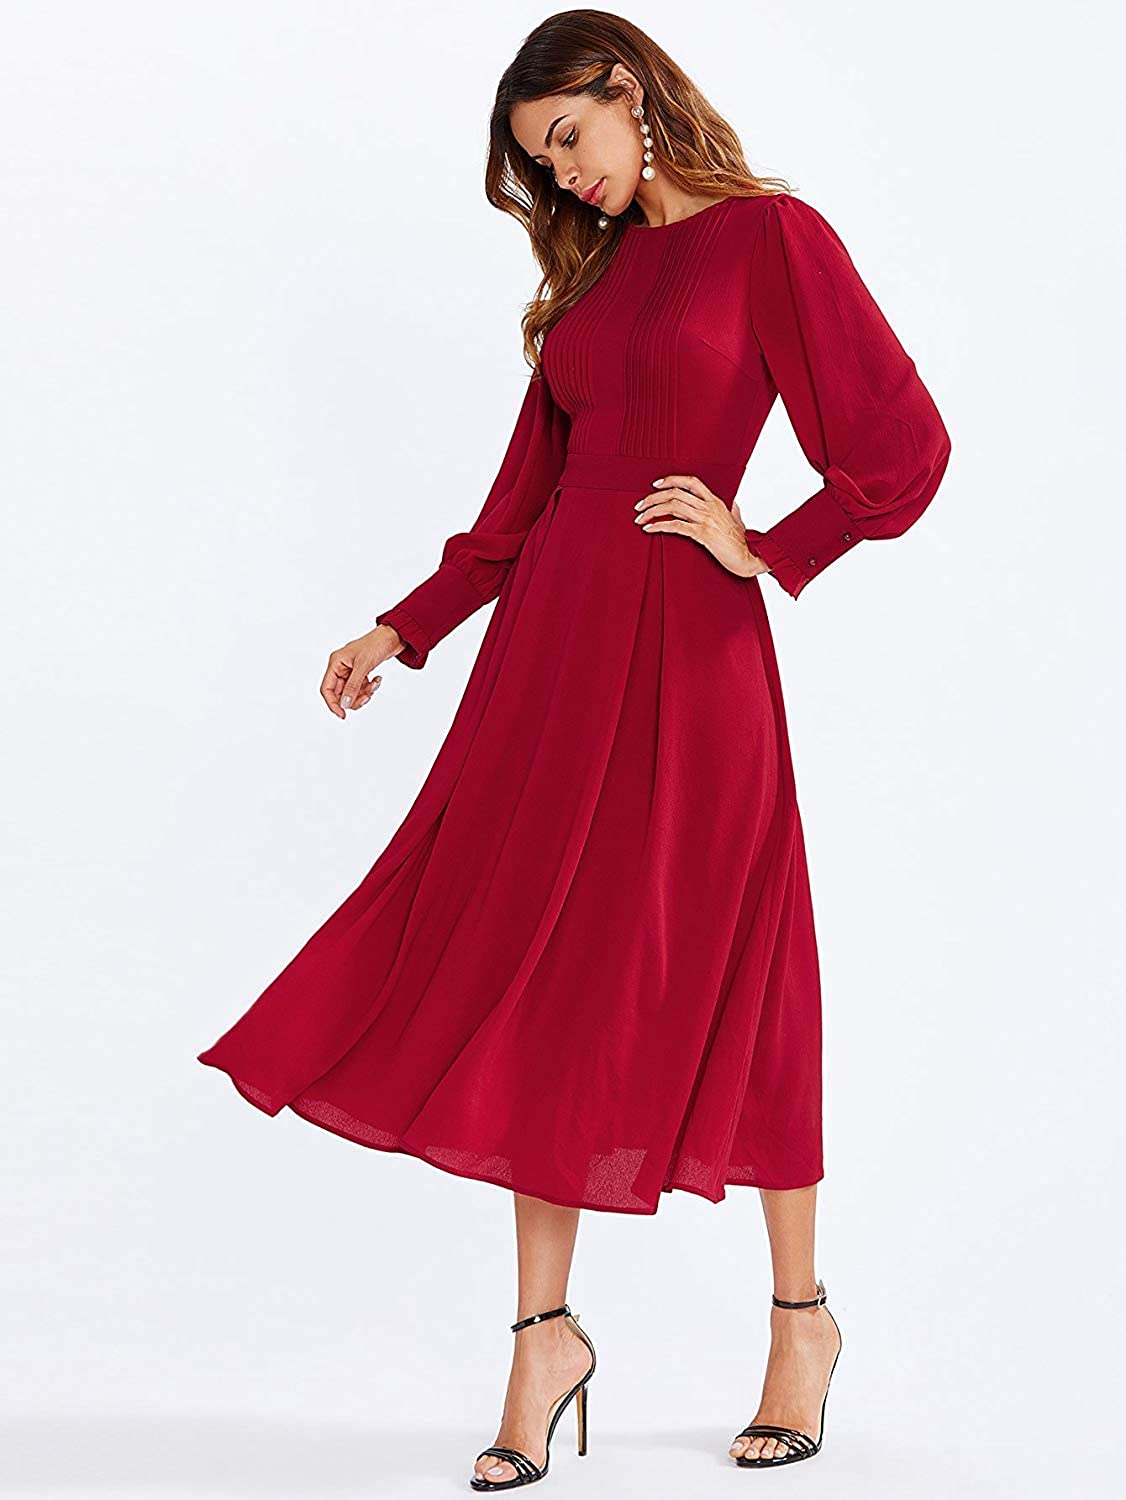 1930s Day Dresses, Afternoon Dresses History Milumia Womens Elegant Frilled Long Sleeve Pleated Fit & Flare Dress $36.99 AT vintagedancer.com